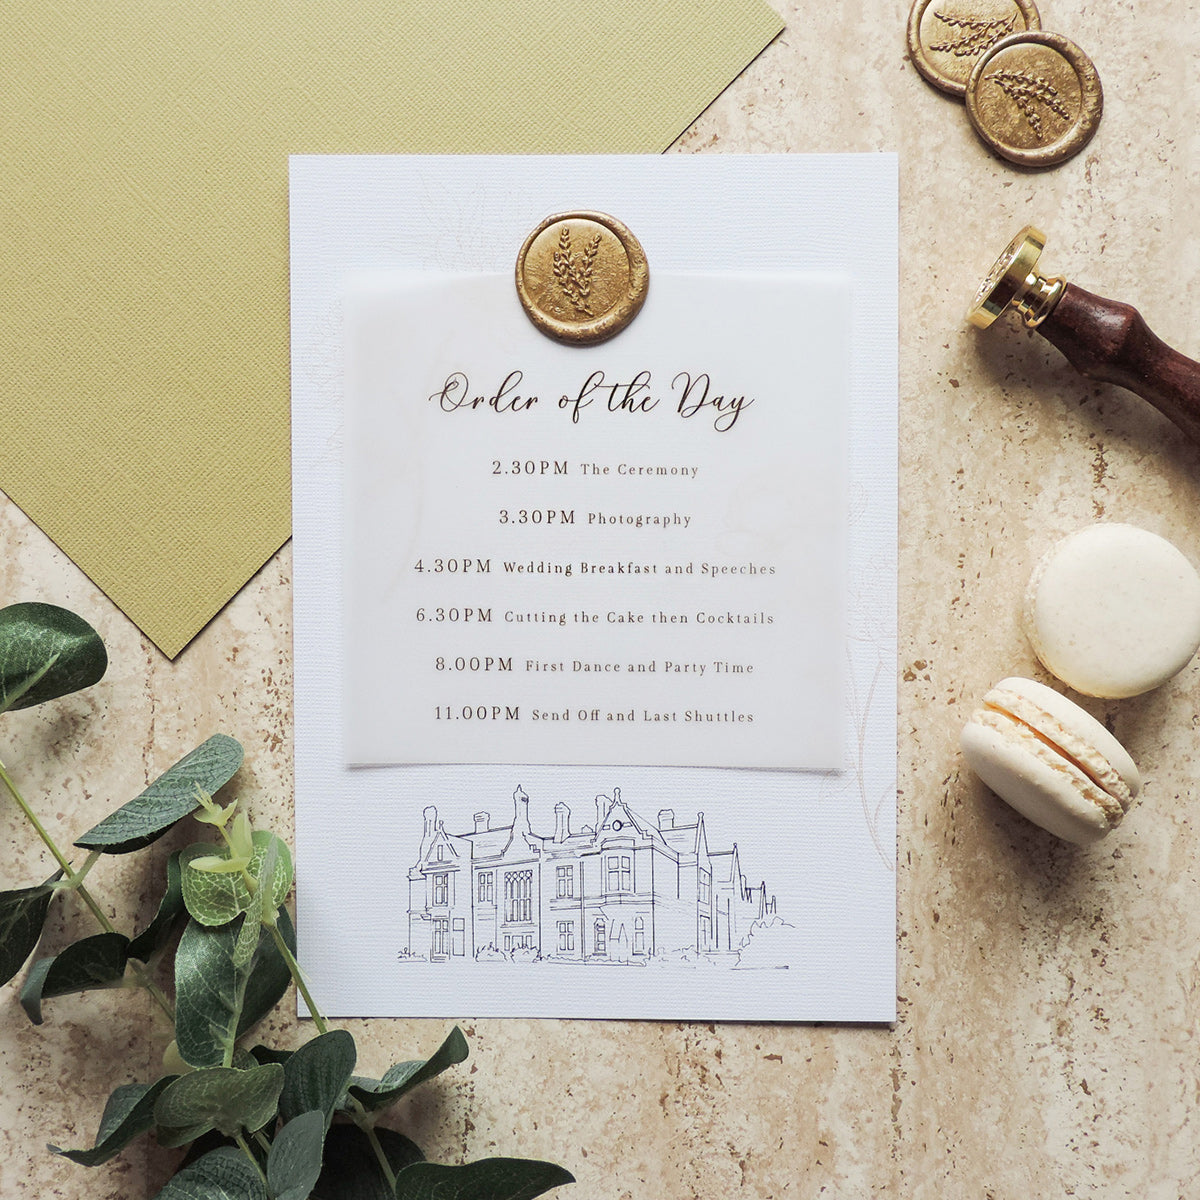 Gold Splendour Wax Seal Order of the Day